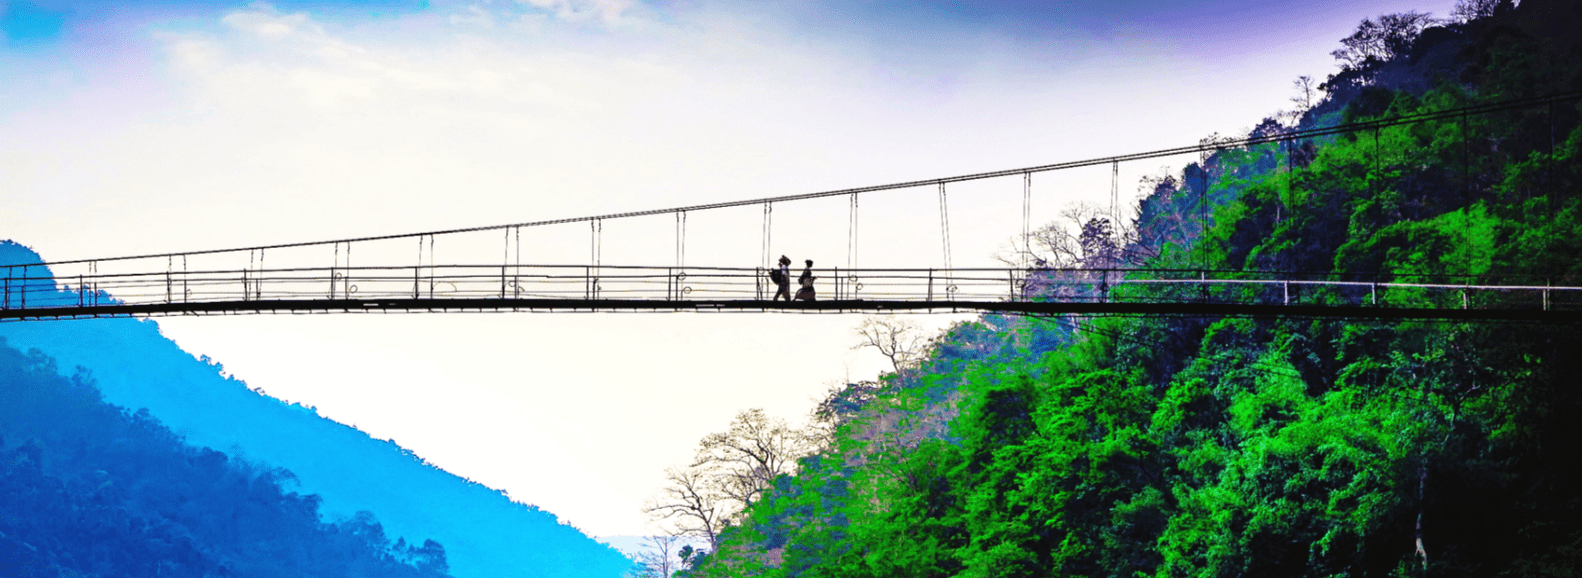 2 people walking on a bridge in Shillong